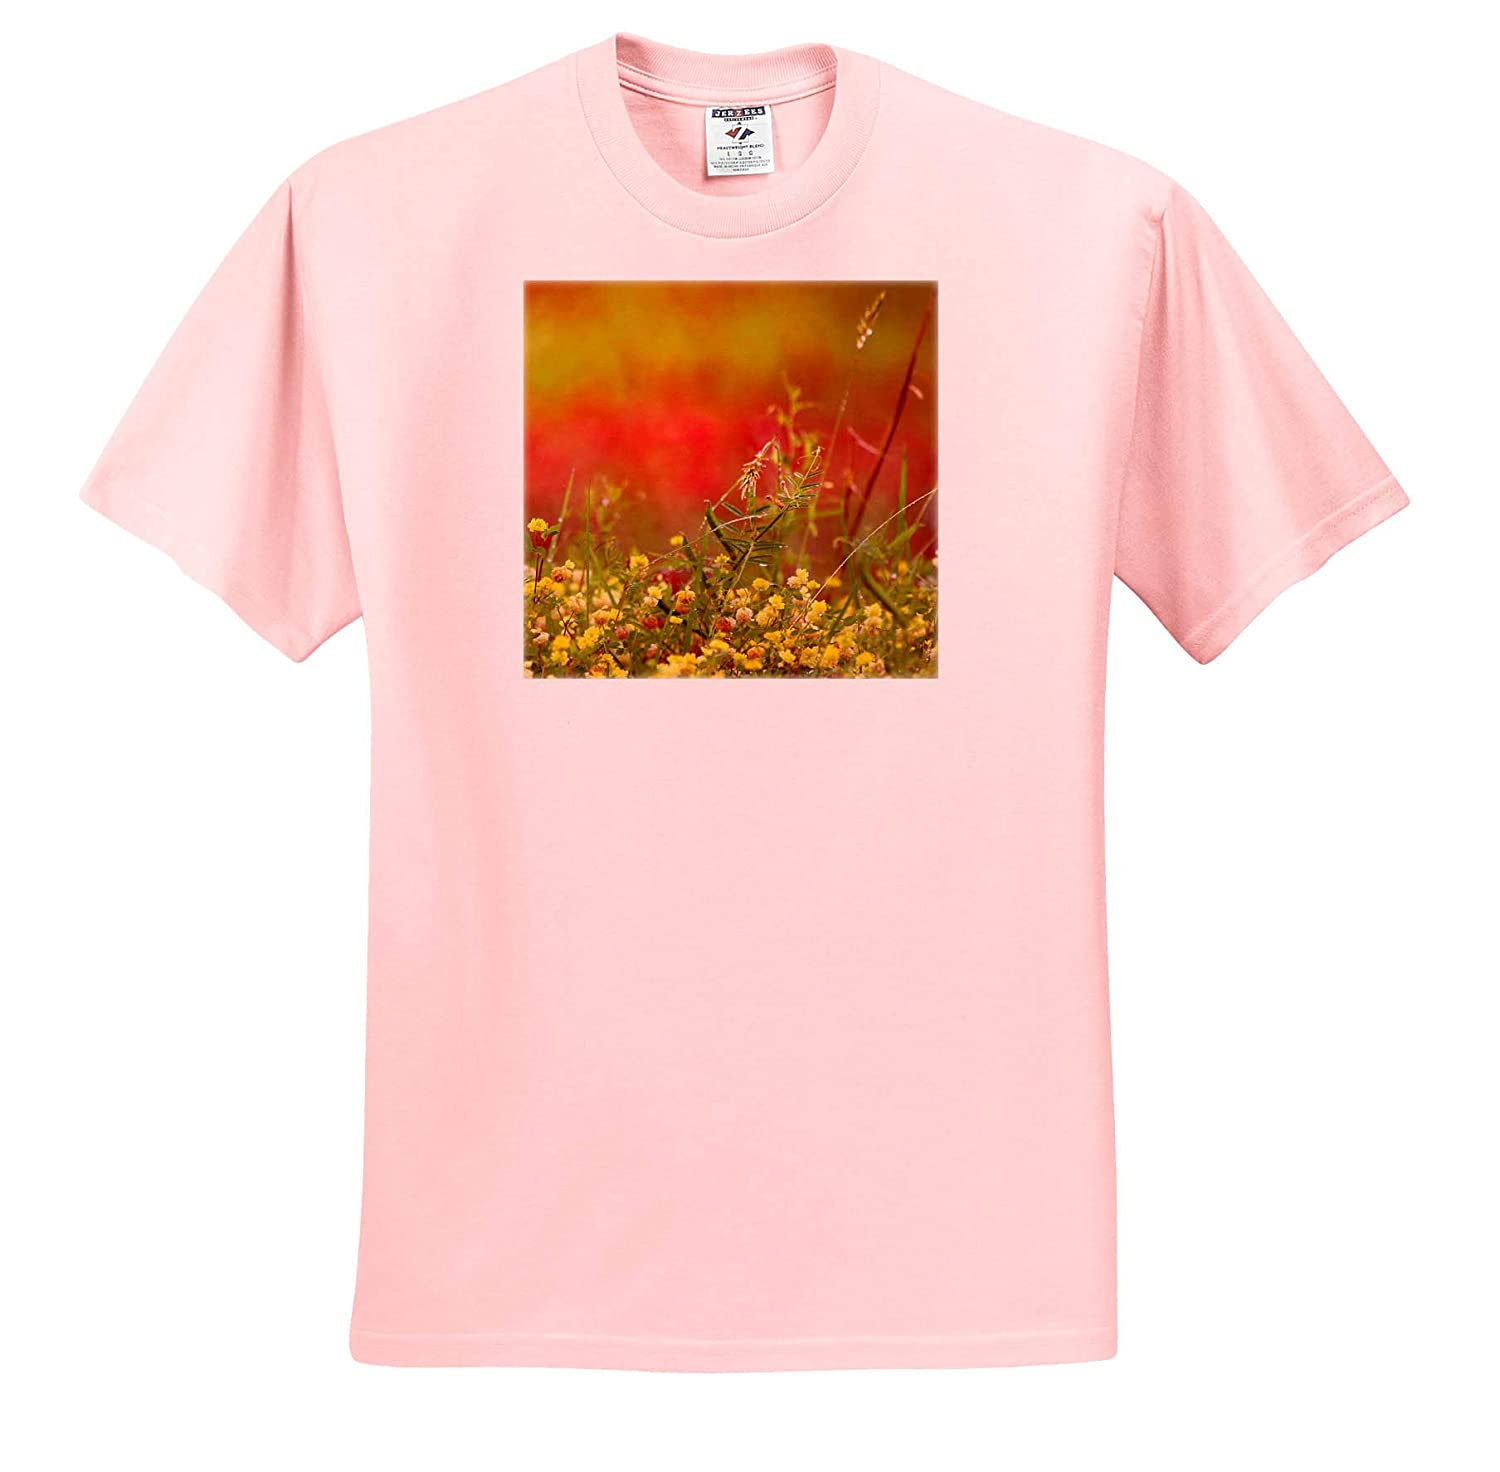 - T-Shirts Nature Photograph of a Field Covered in Weeds and Tiny Yellow Flowers 3dRose Stamp City